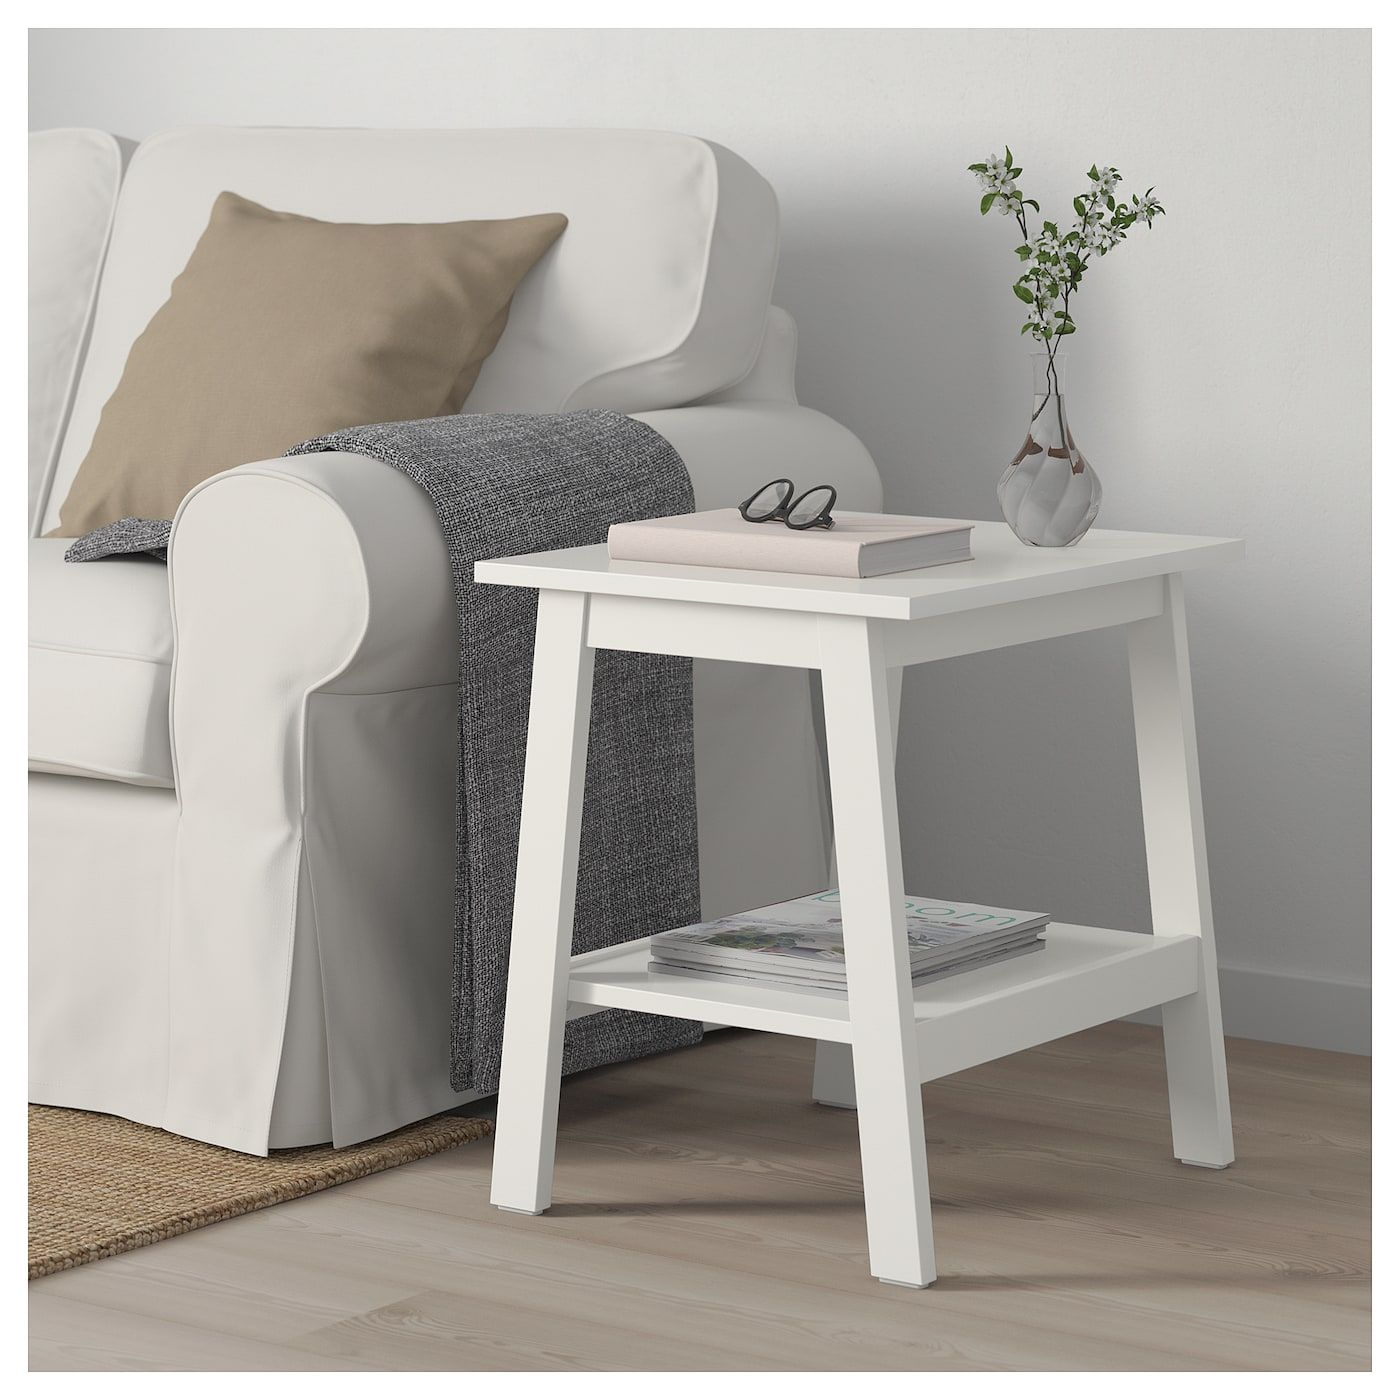 LUNNARP Side table white White side tables, Ikea side